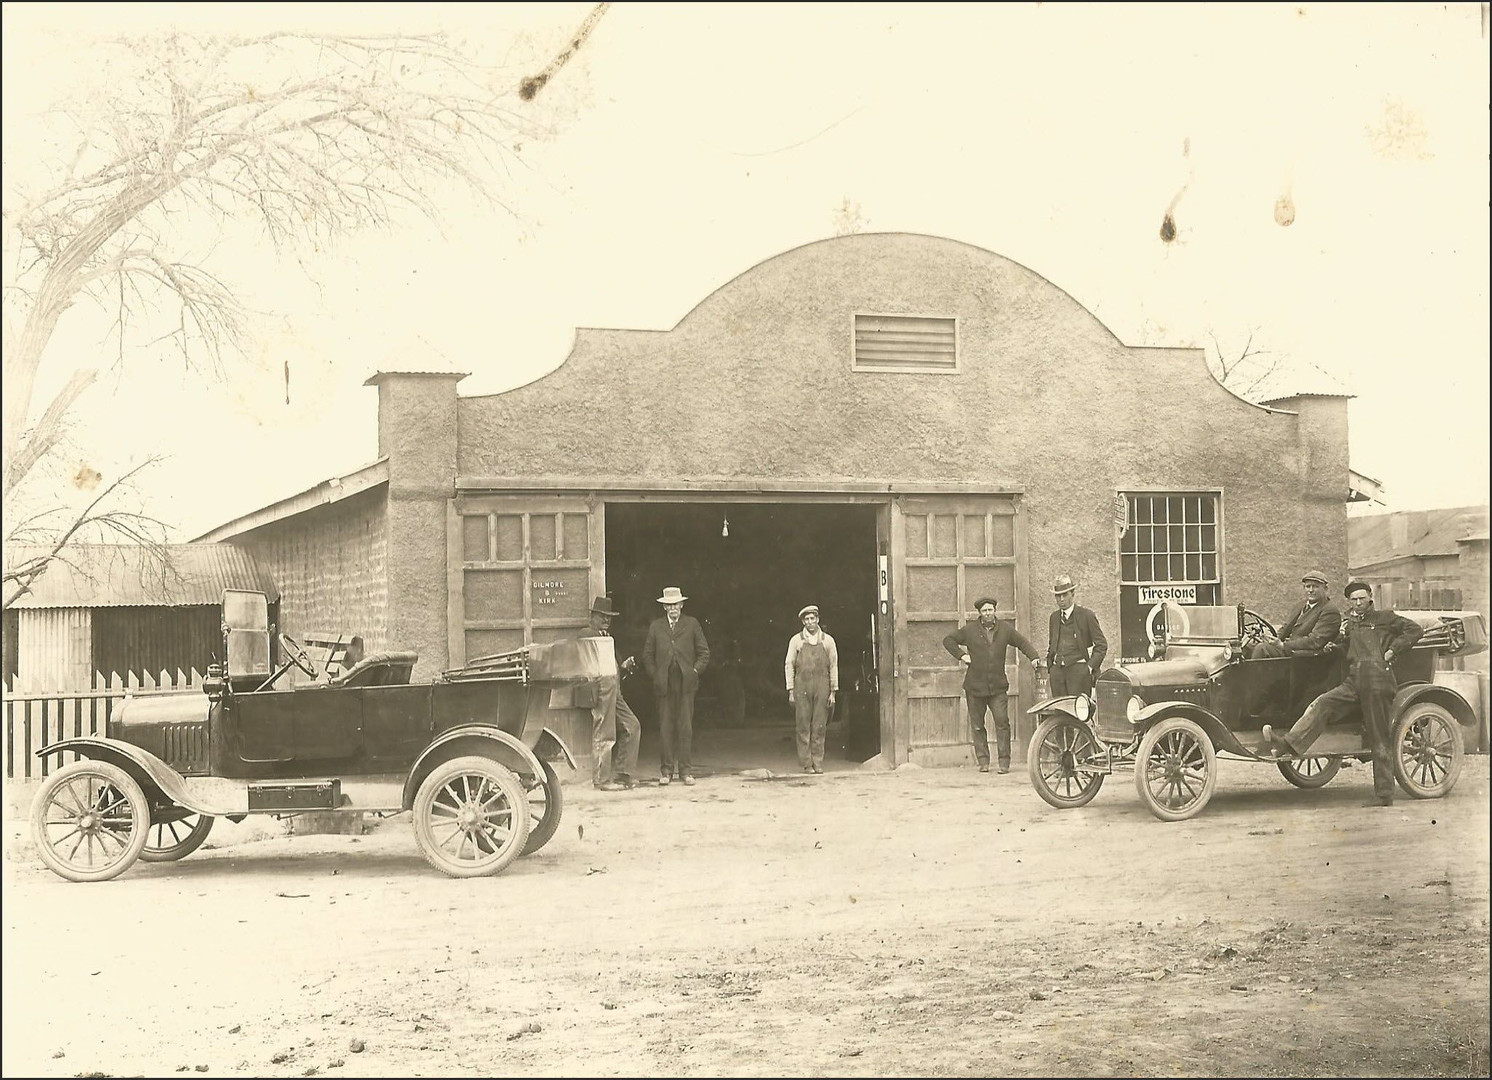 Matt Gilmore's City Garage. This fine business was located on St Francis (US Highway 54/70). Unfortunately, this facility was torn down in the 1950's. Automobiles were both 1915 Ford Model T Touring Editions.